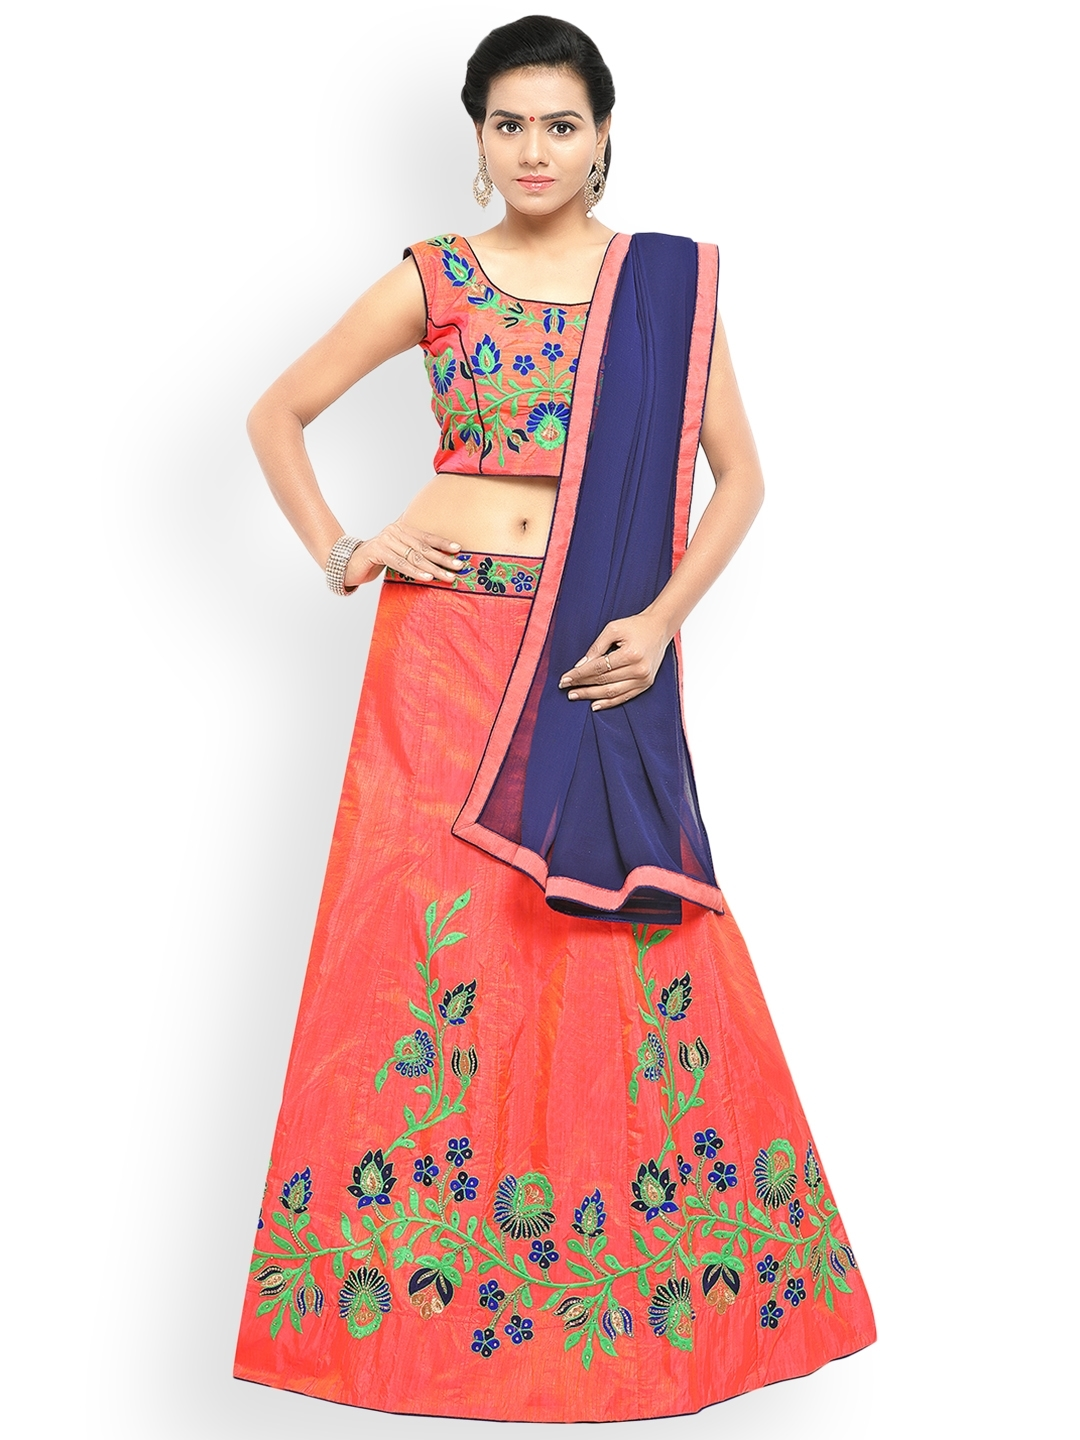 ee55cb76e Styles Closet Orange   Blue Embroidered Semi-Stitched Lehenga   Unstitched  Blouse with Dupatta